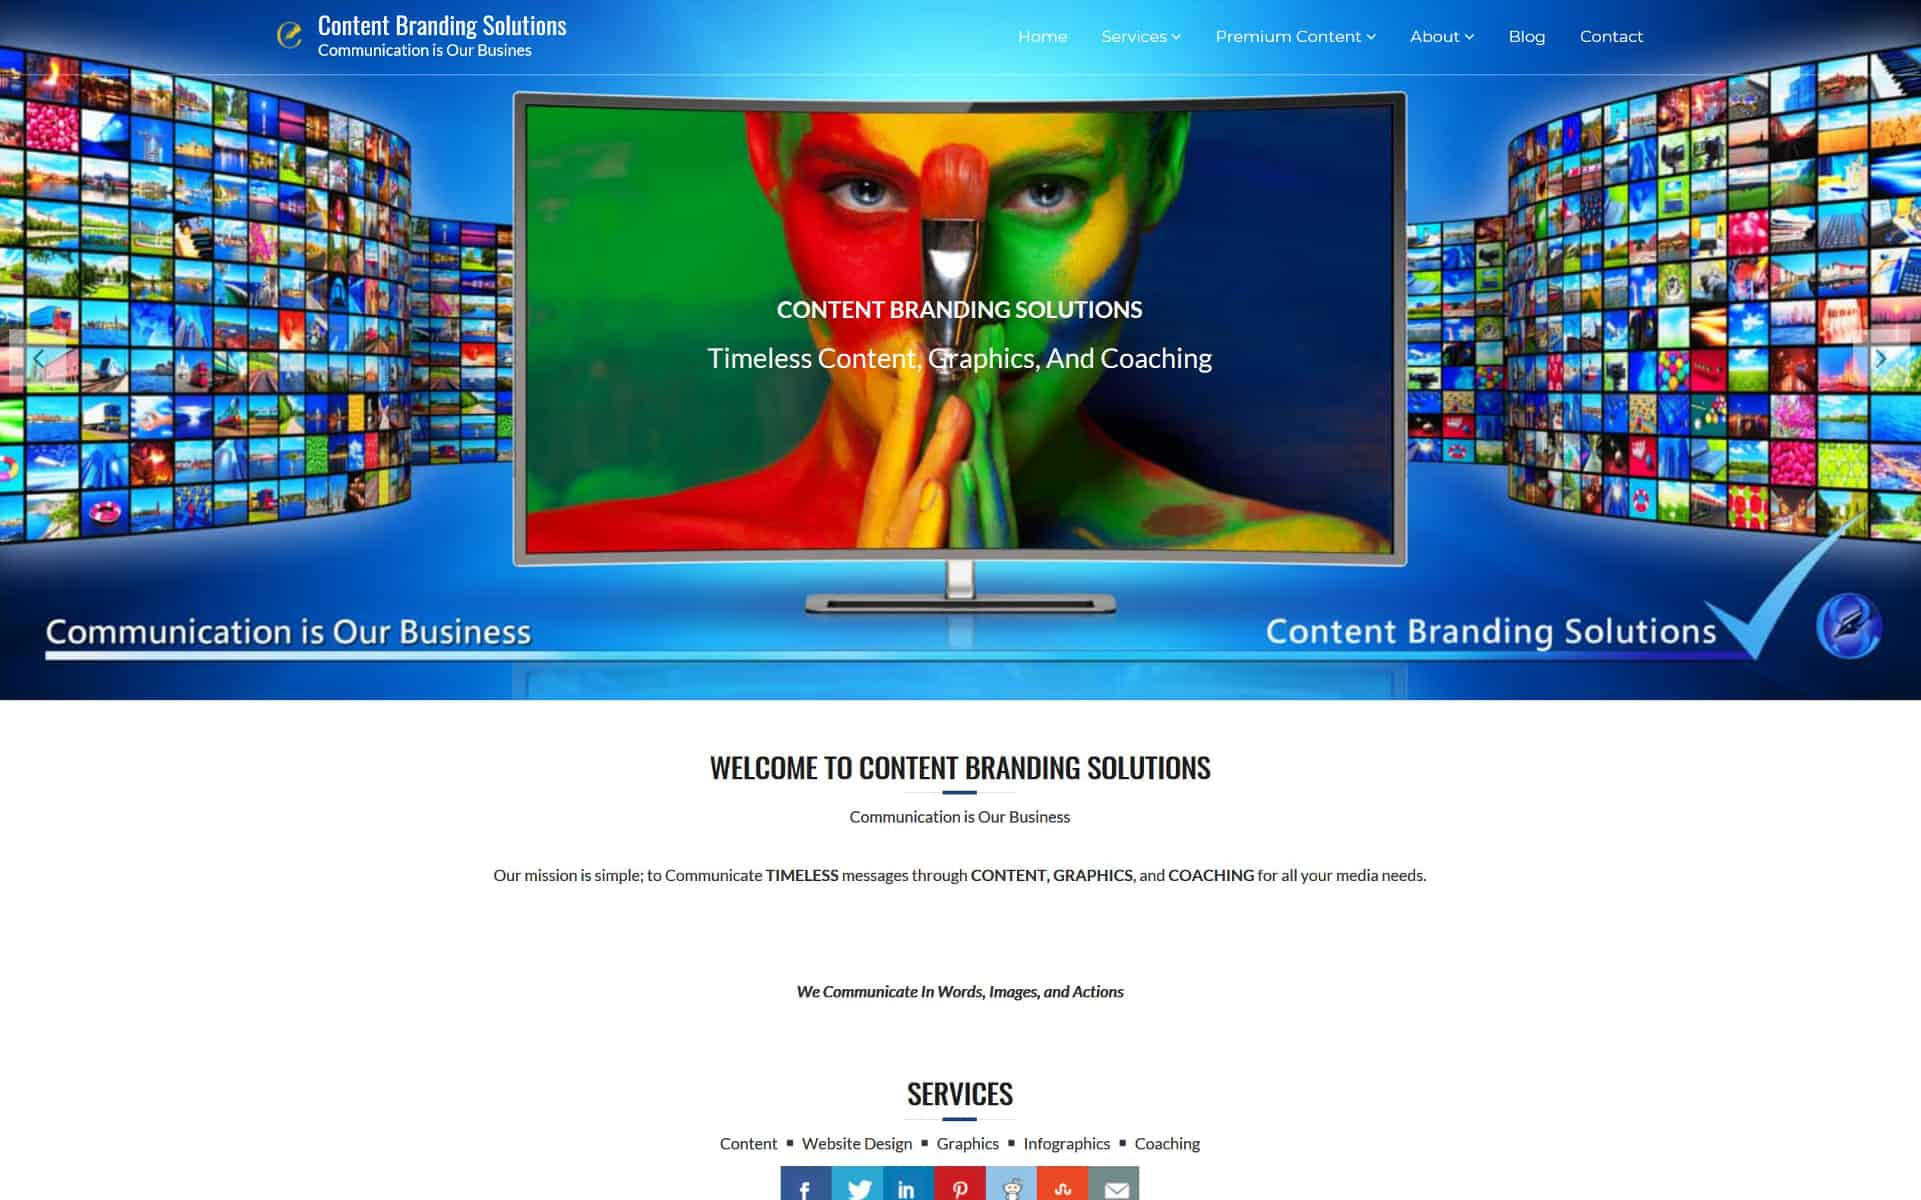 Content Branding Solution - Website Design, Content, Images and Graphics by Content Branding Solutions in Denver